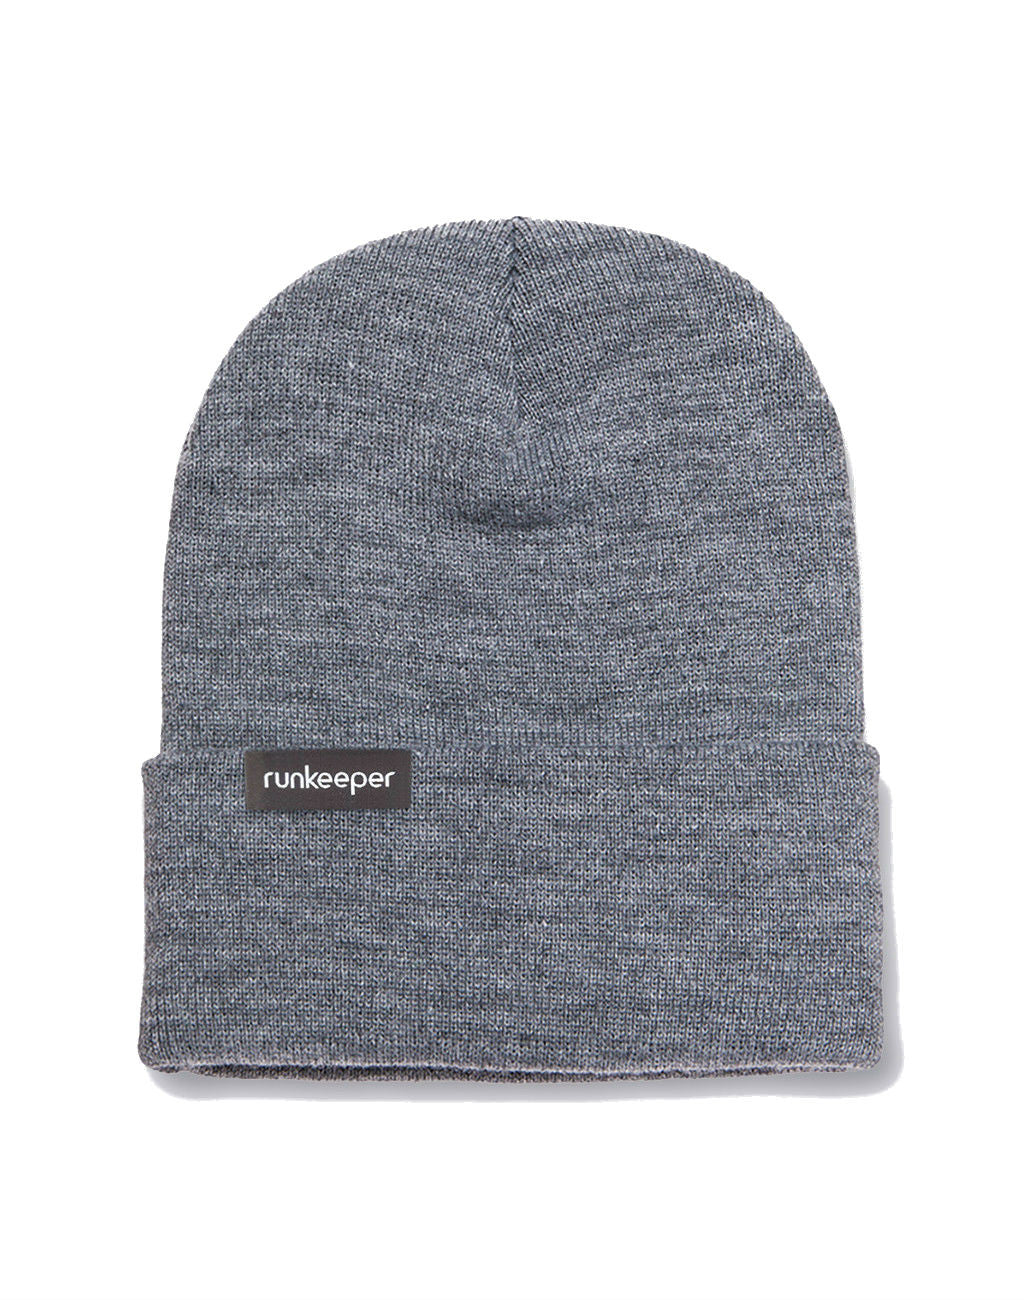 Runkeeper Unisex Knit HatLight Heather Grey_master_image